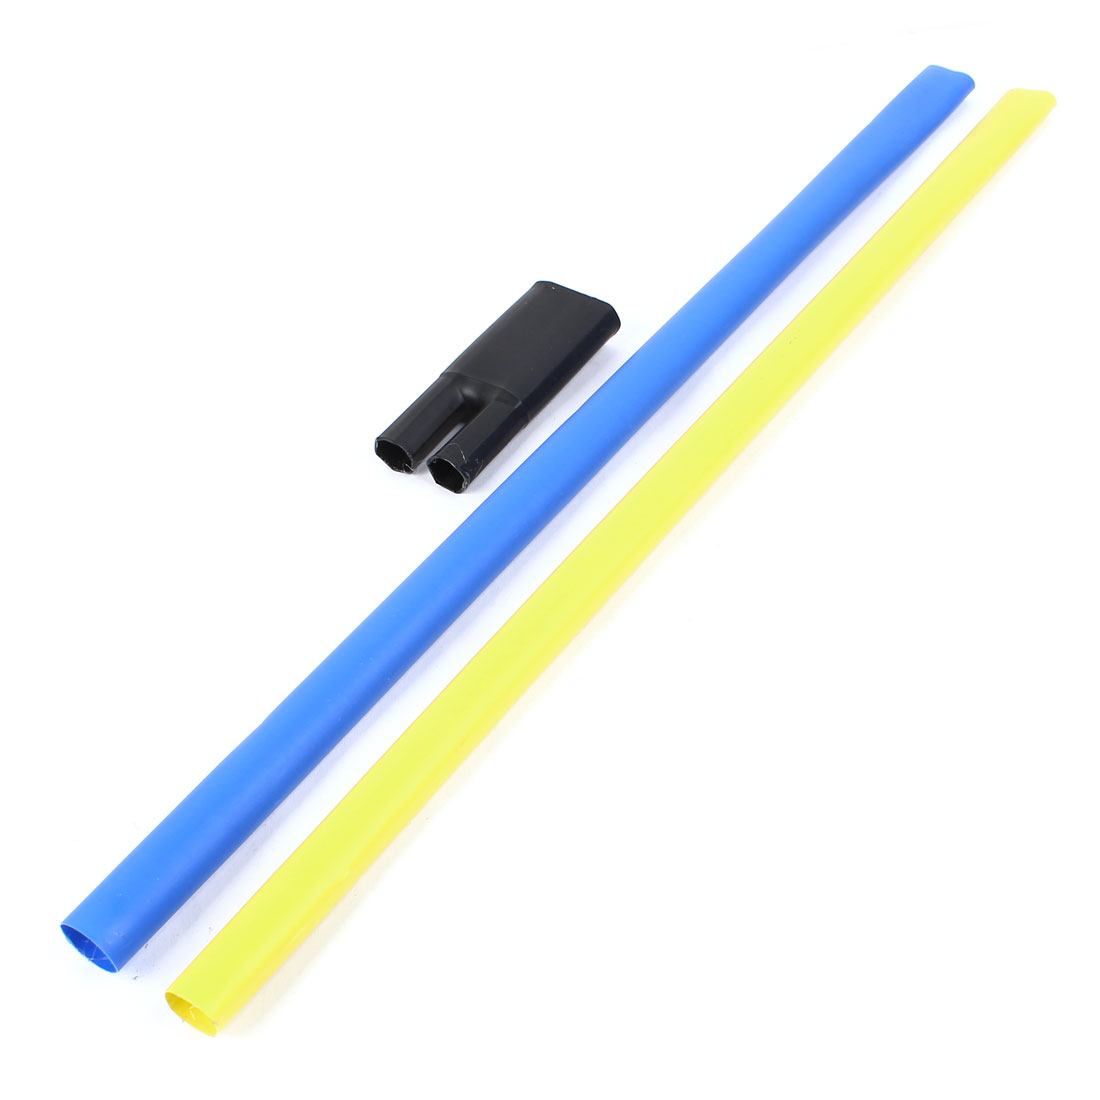 2Pcs Blue Yellow Polyolefin 20mm Dia 25-50mm2 Cable Heat Shrink Cover Wiring Shrinkable Tube 0.6M w Breakout Boot